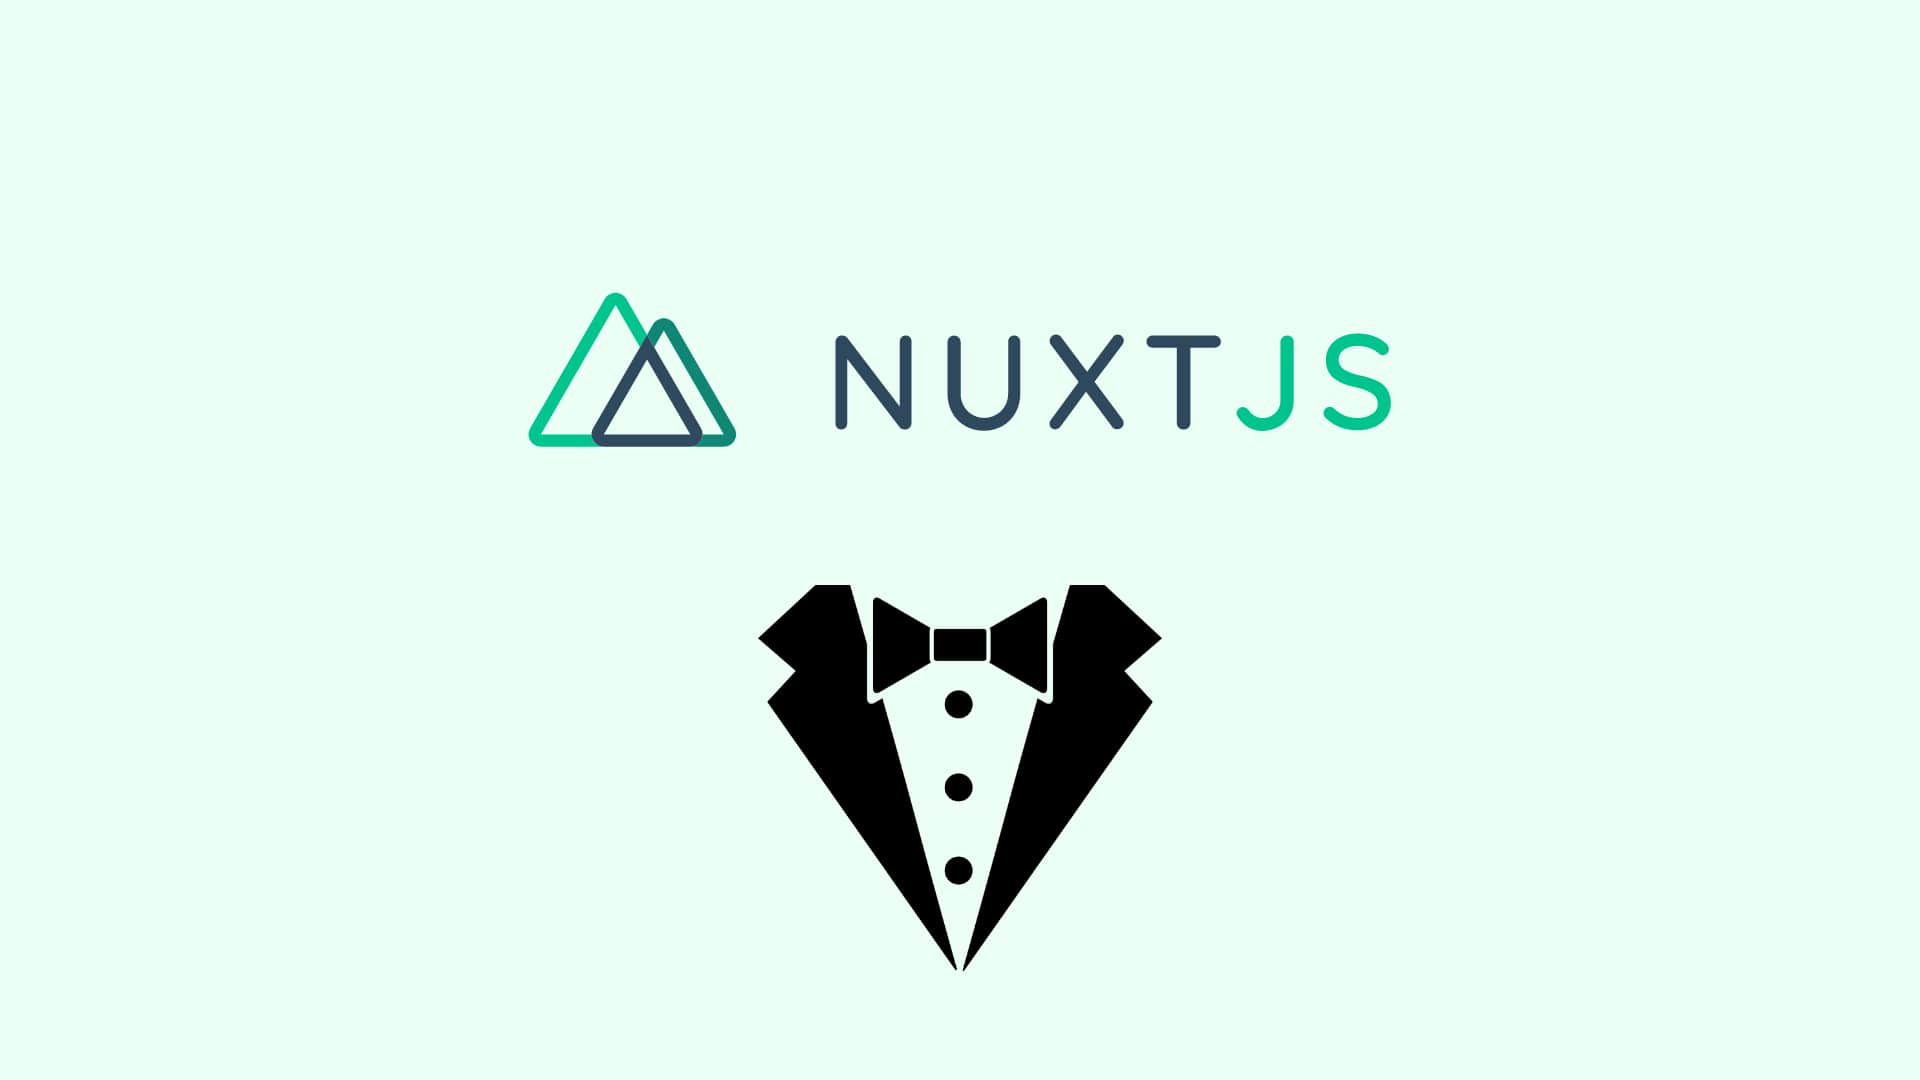 Nuxt.jsでstylelintの設定をして快適なscss環境を。